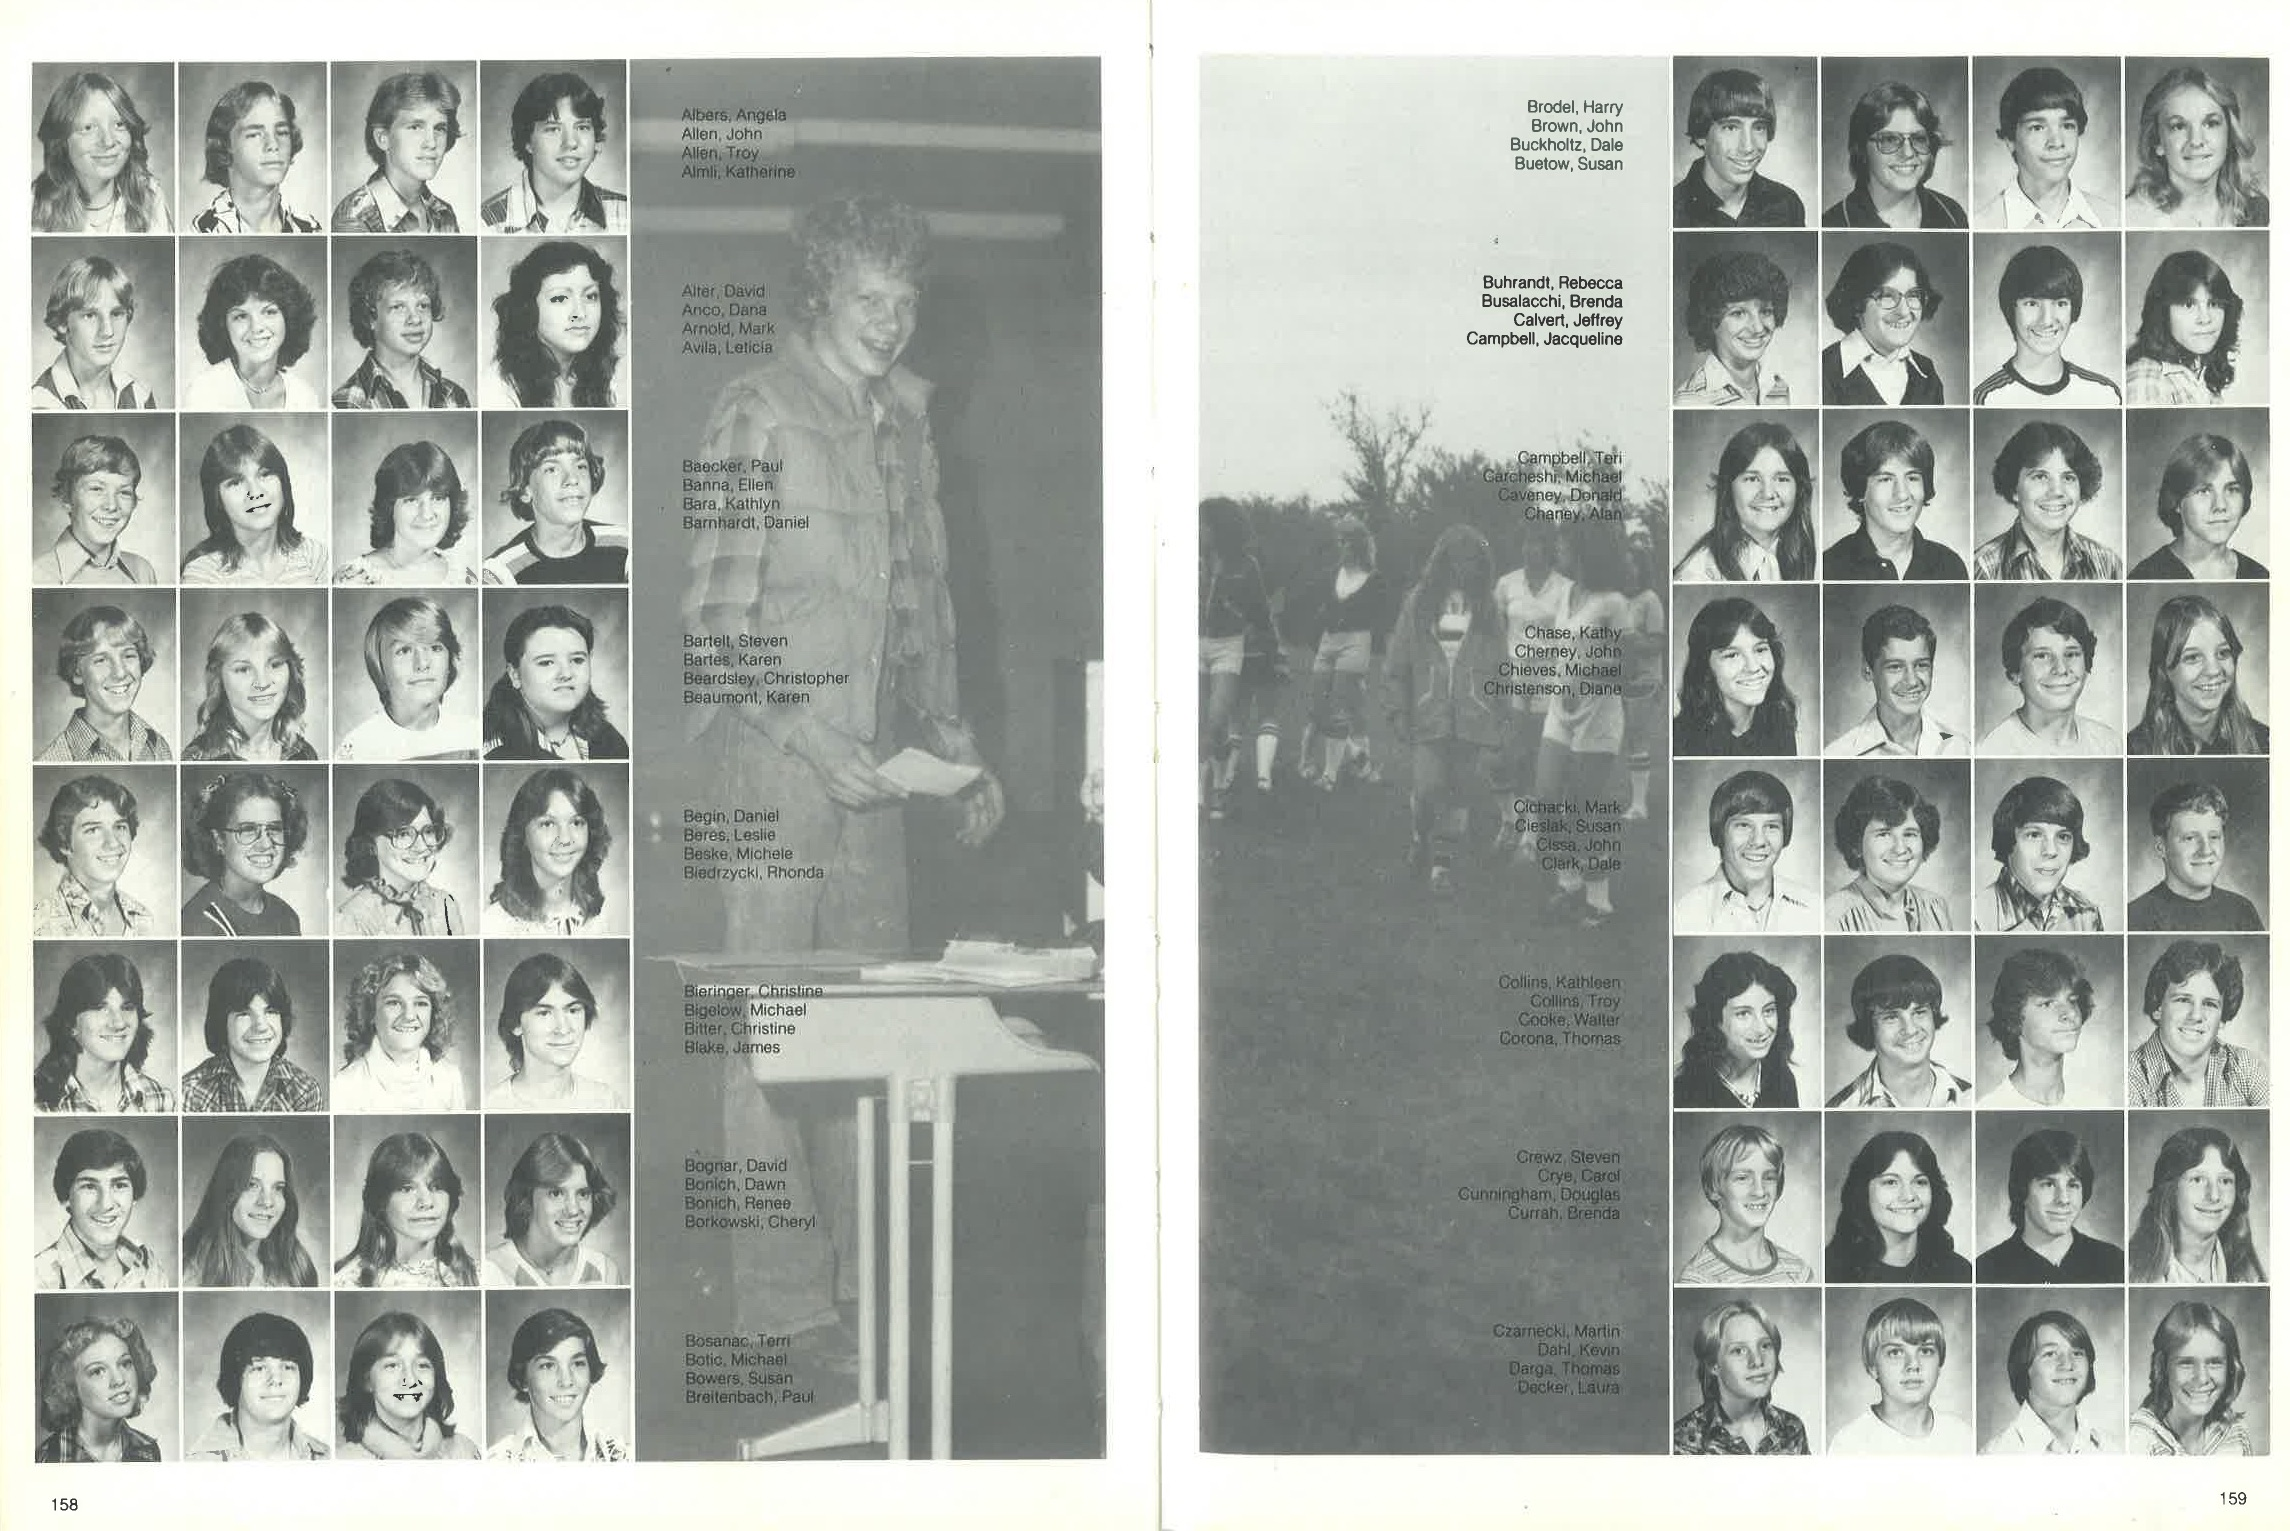 1979_Yearbook_150.jpg